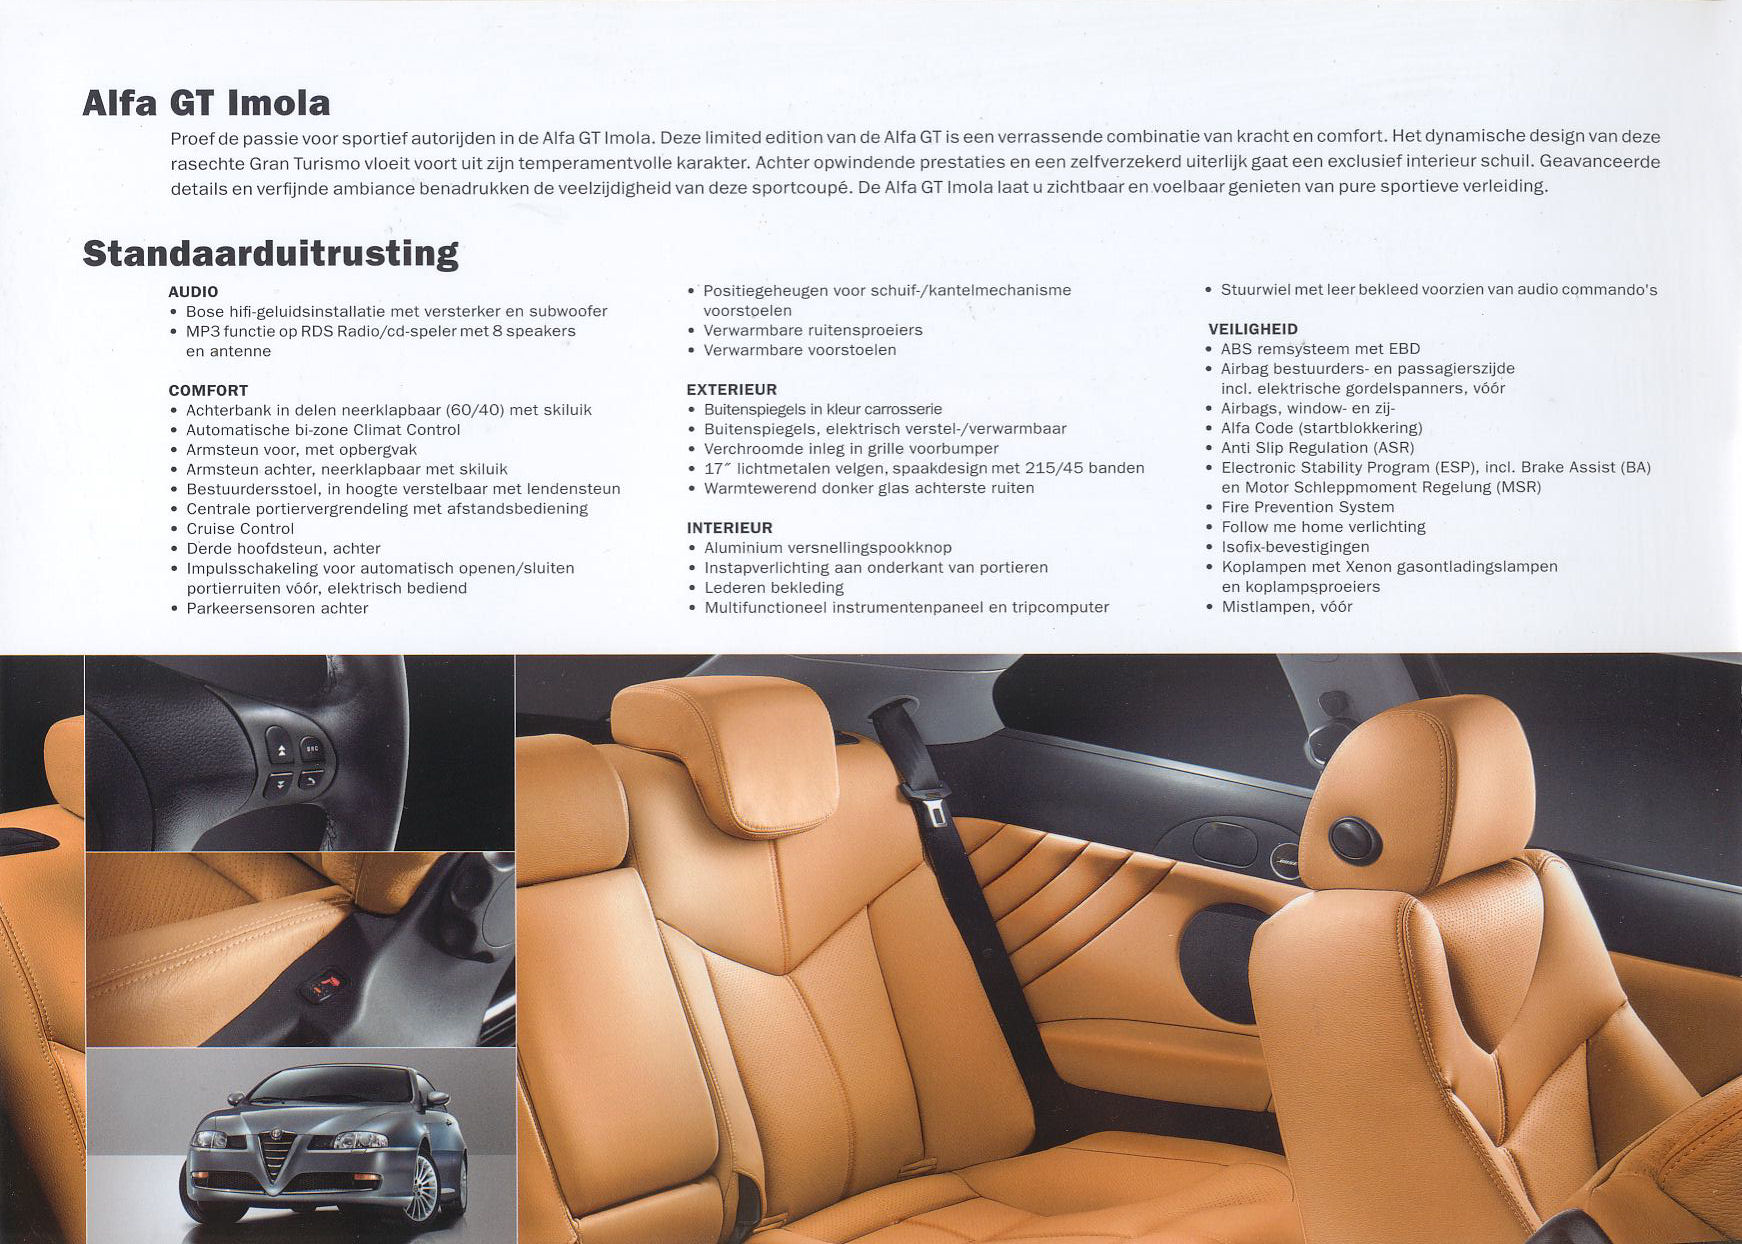 Follow Me Home Verlichting Renault 2007 Alfa Romeo Gt Imola Brochure